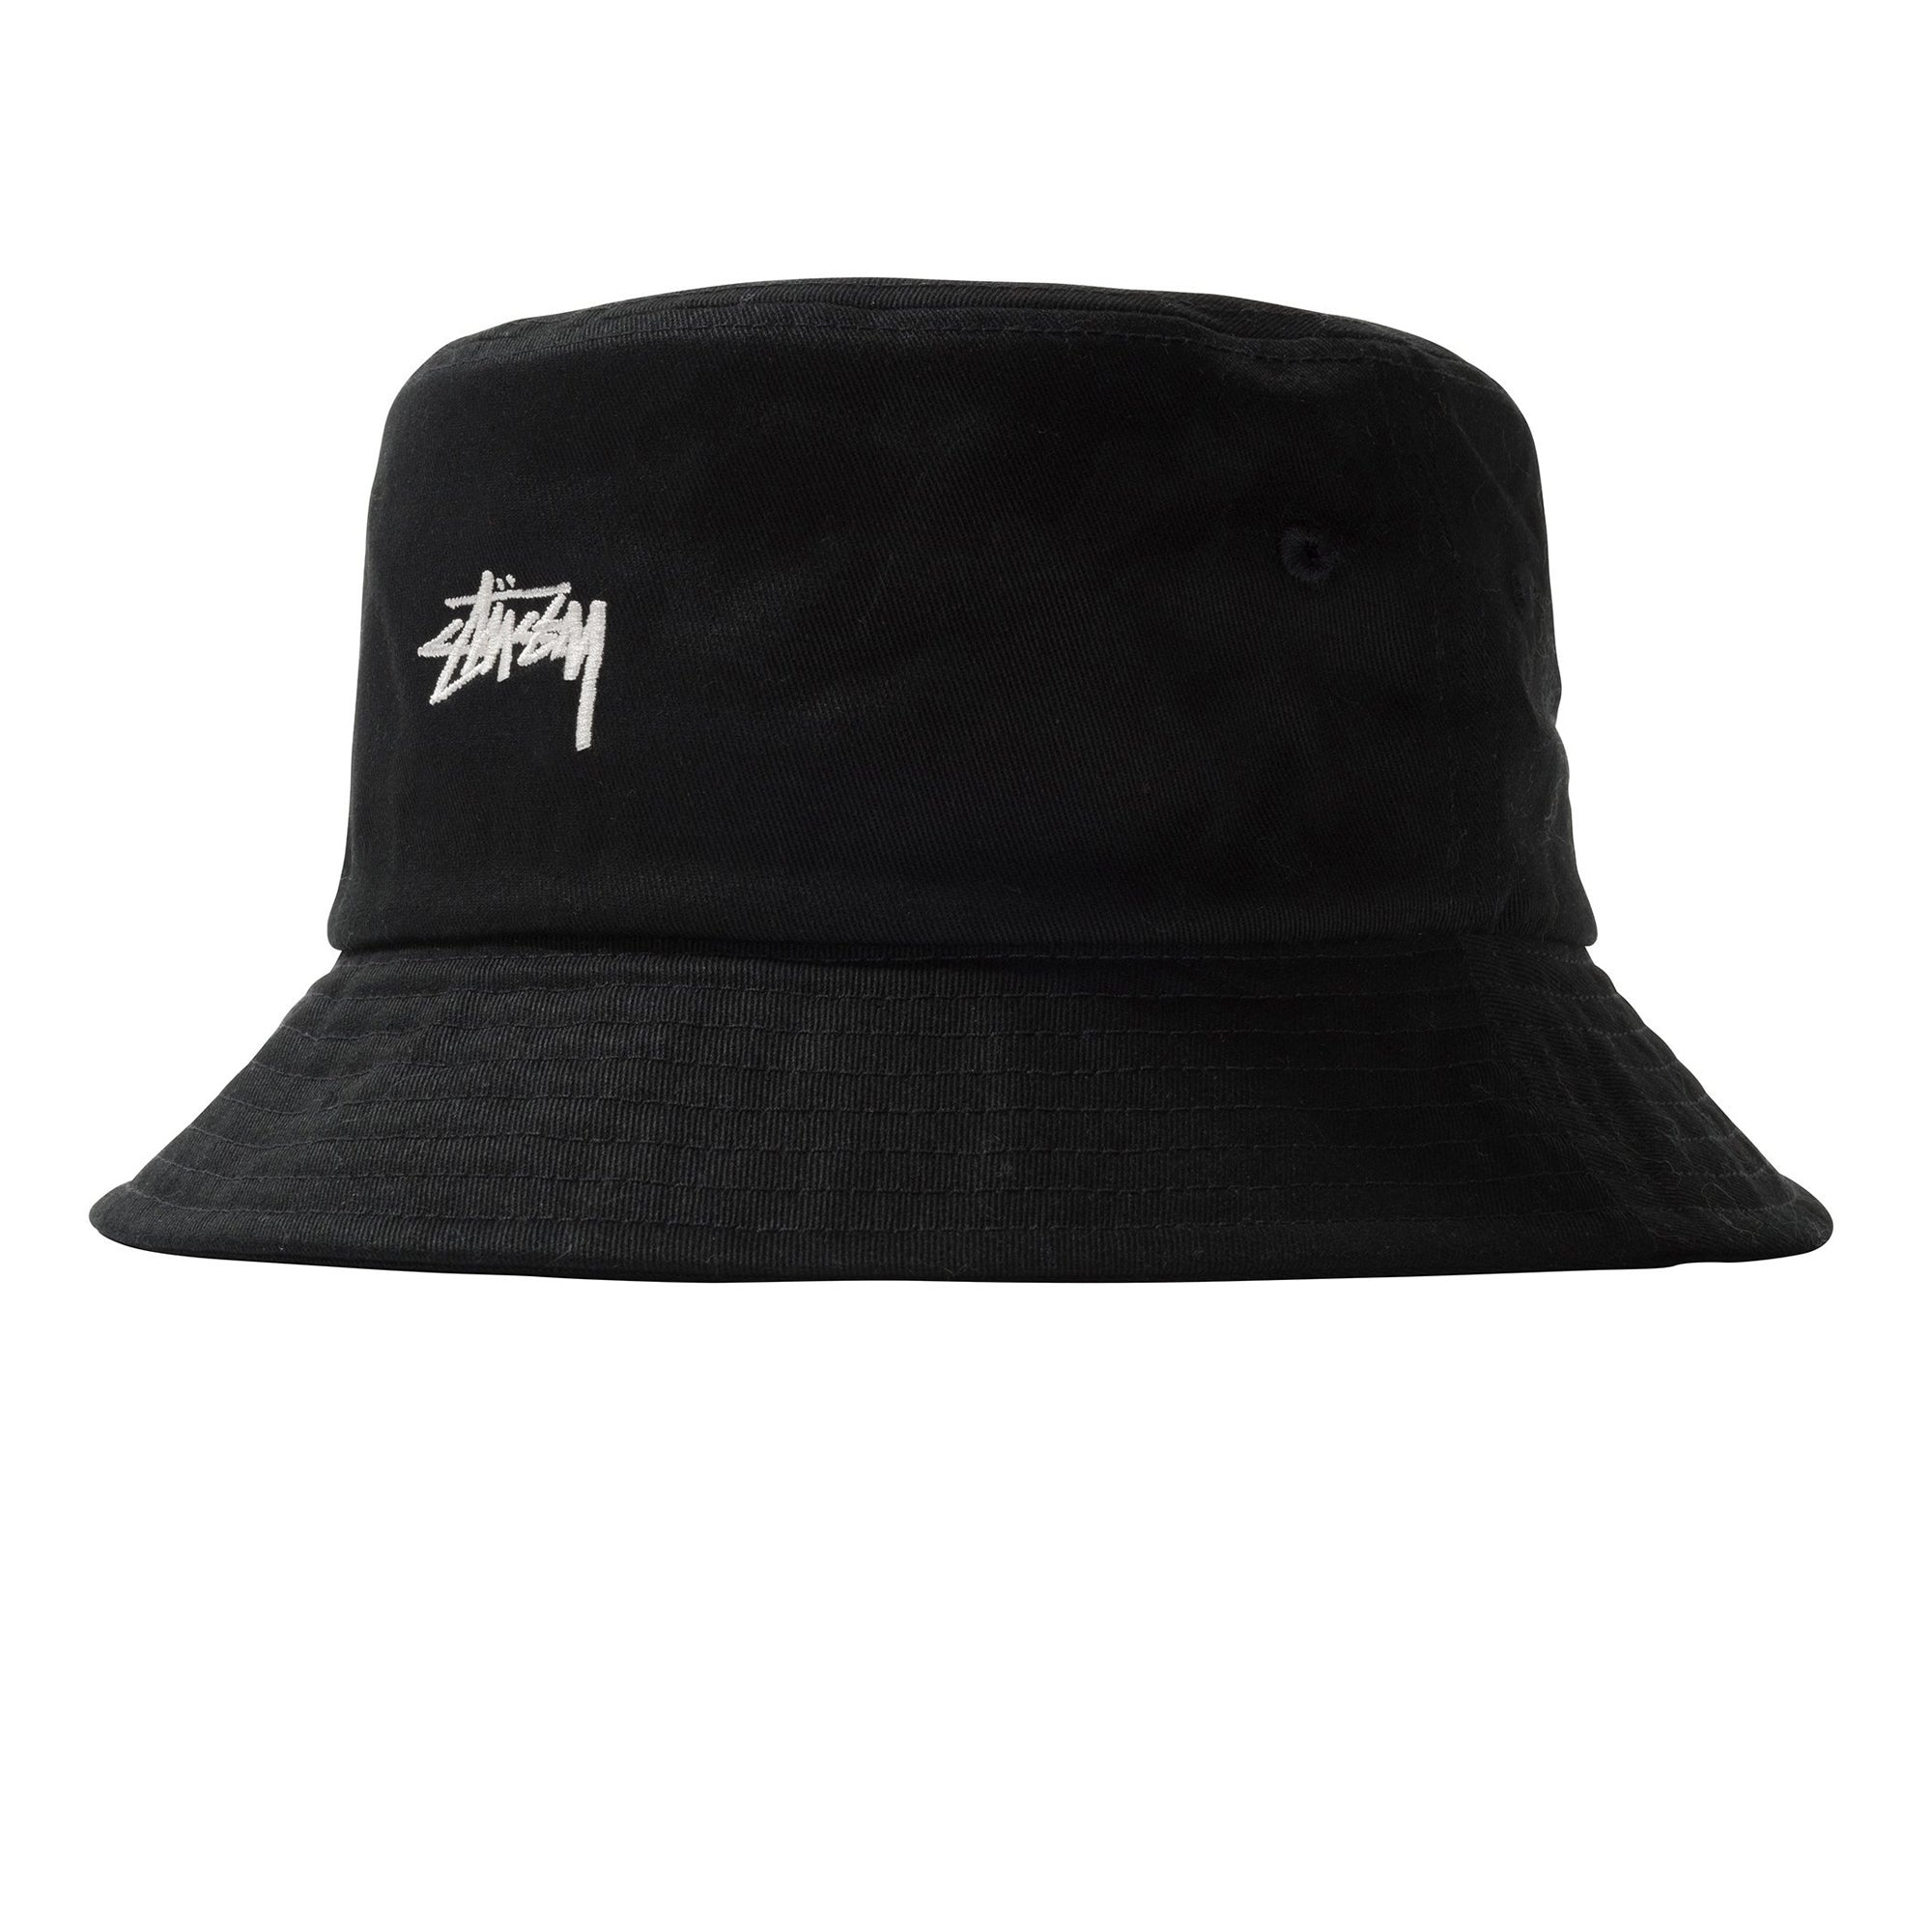 Stussy Stock Bucket Hat Black